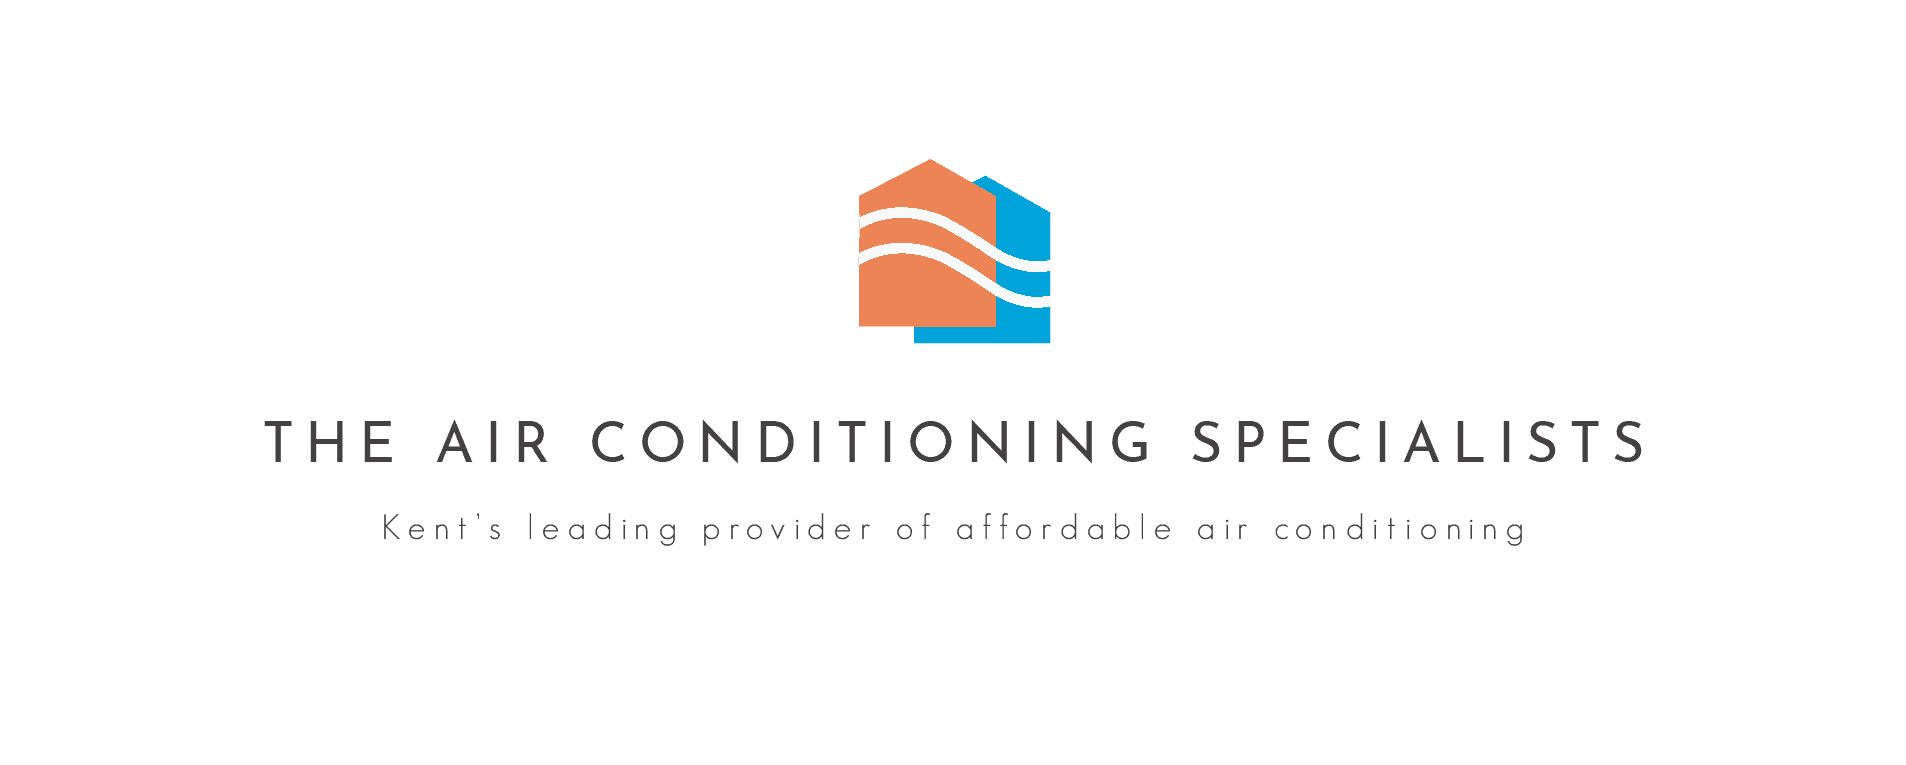 Contact Air Conditioning in West Malling Contact